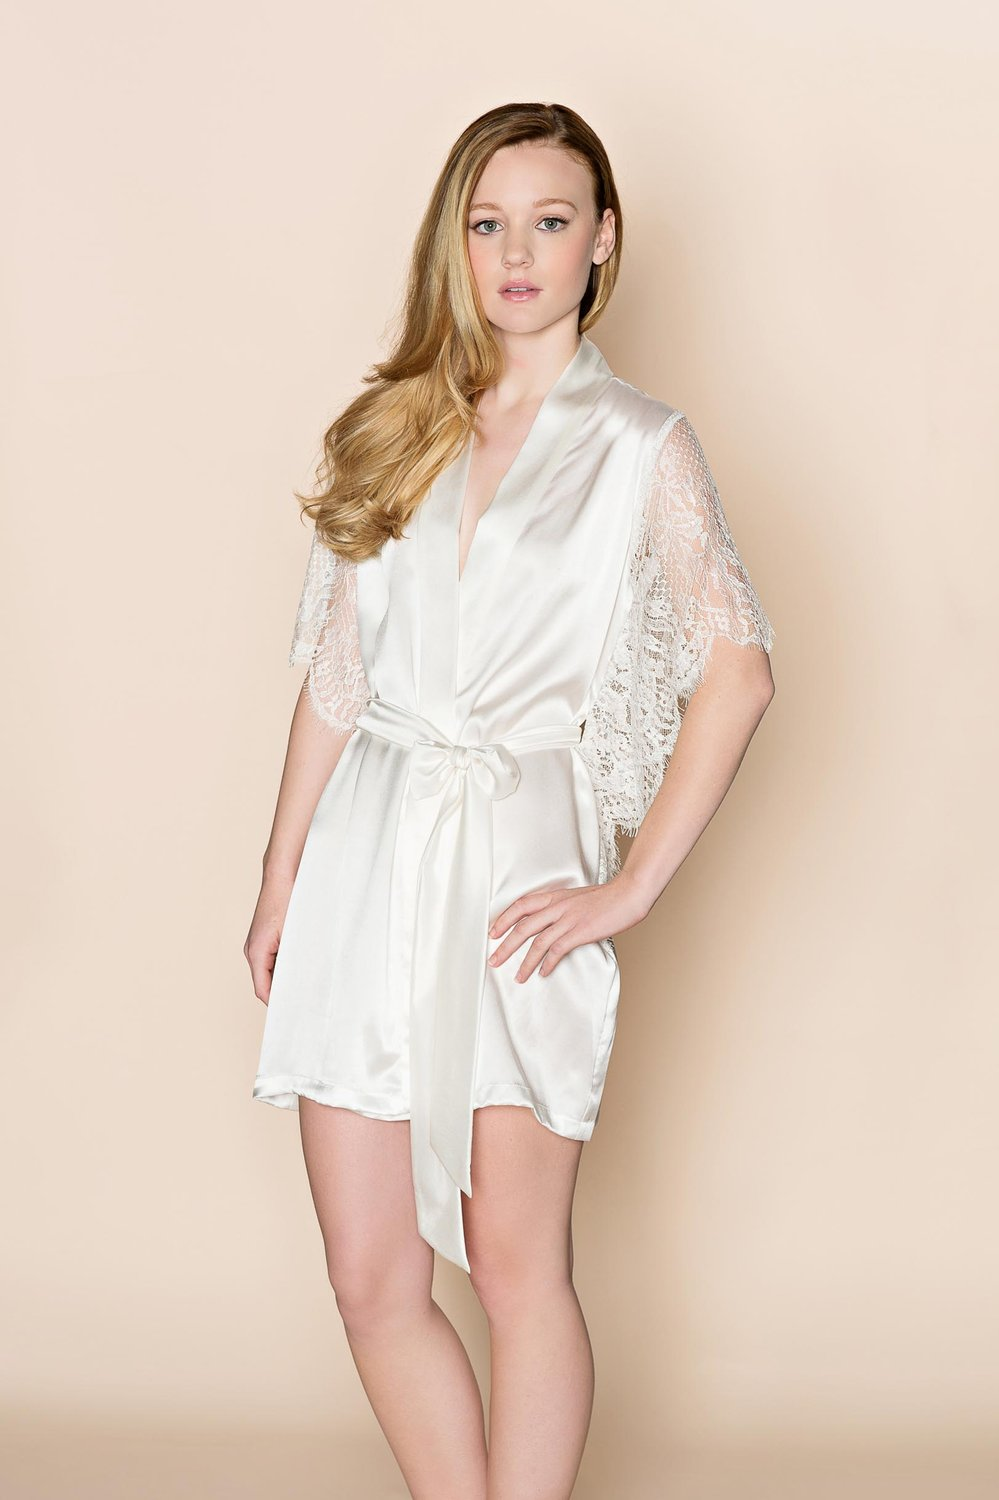 Grace winged Silk & Lace Bridal Kimono Robe in Ivory- Style 150